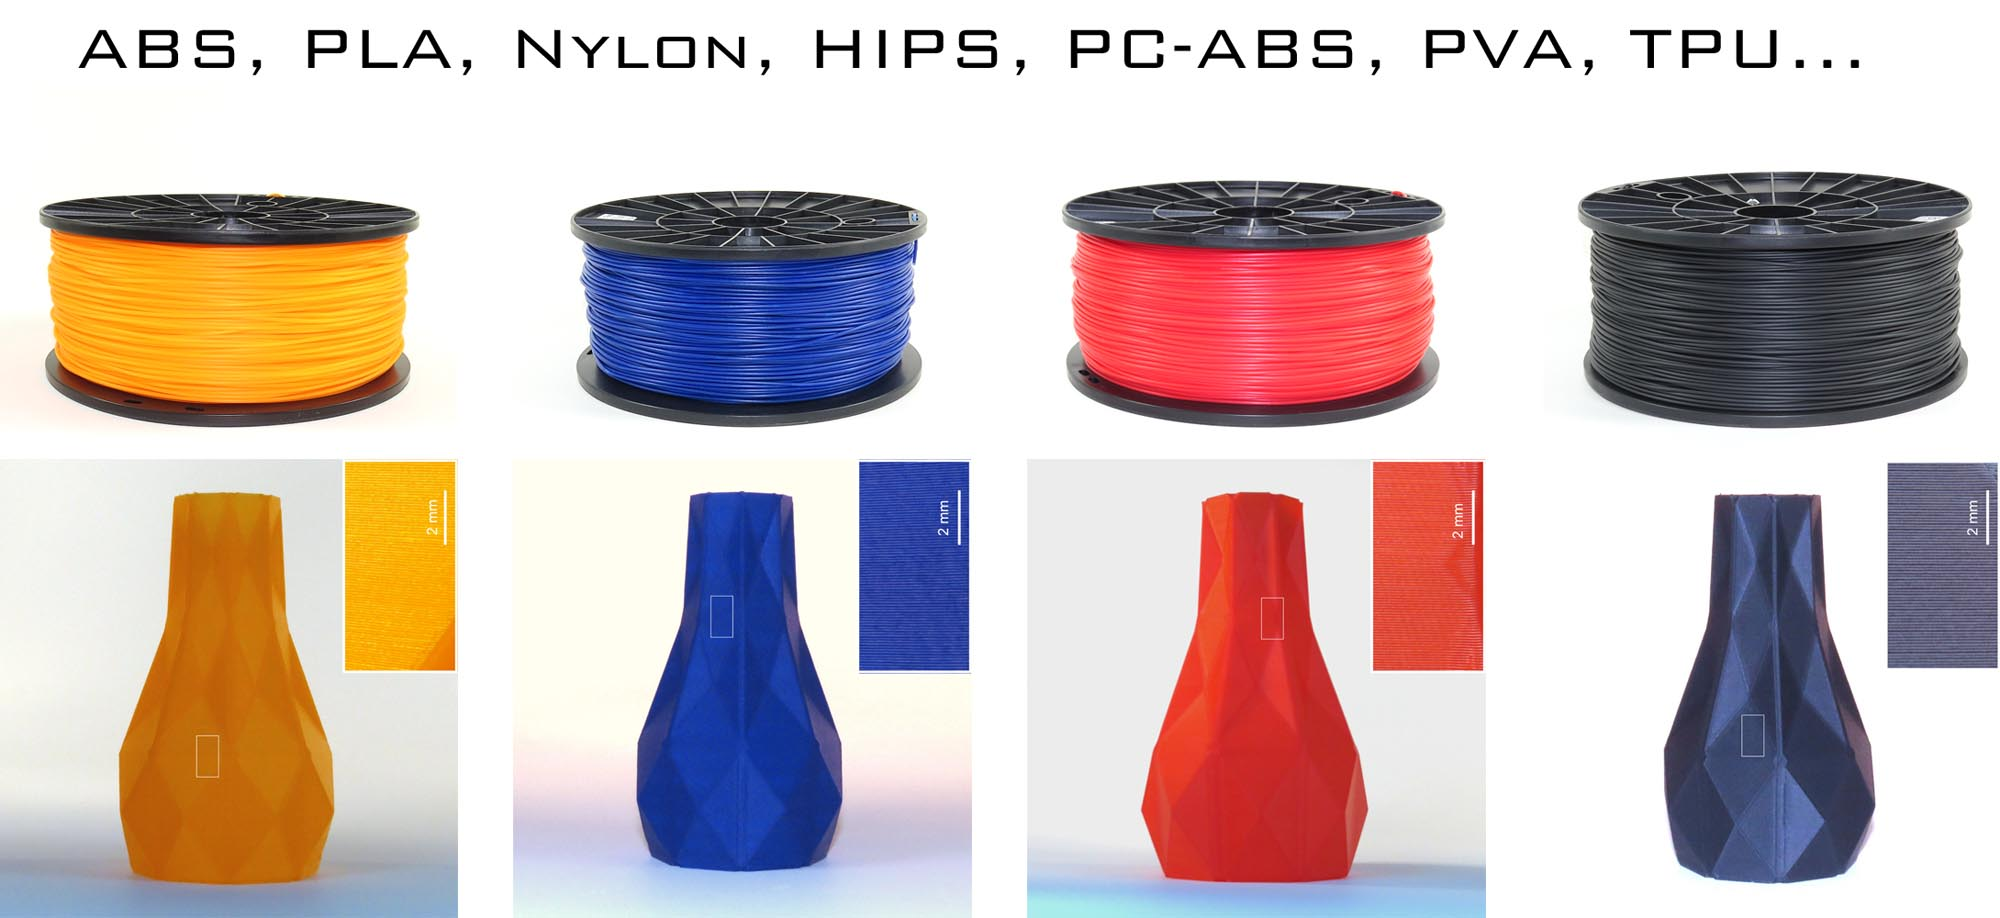 http://cdn6.bigcommerce.com/s-8xq4m0kv/product_images/theme_images/3d_printing_materials__55682.jpg?t=1430342285